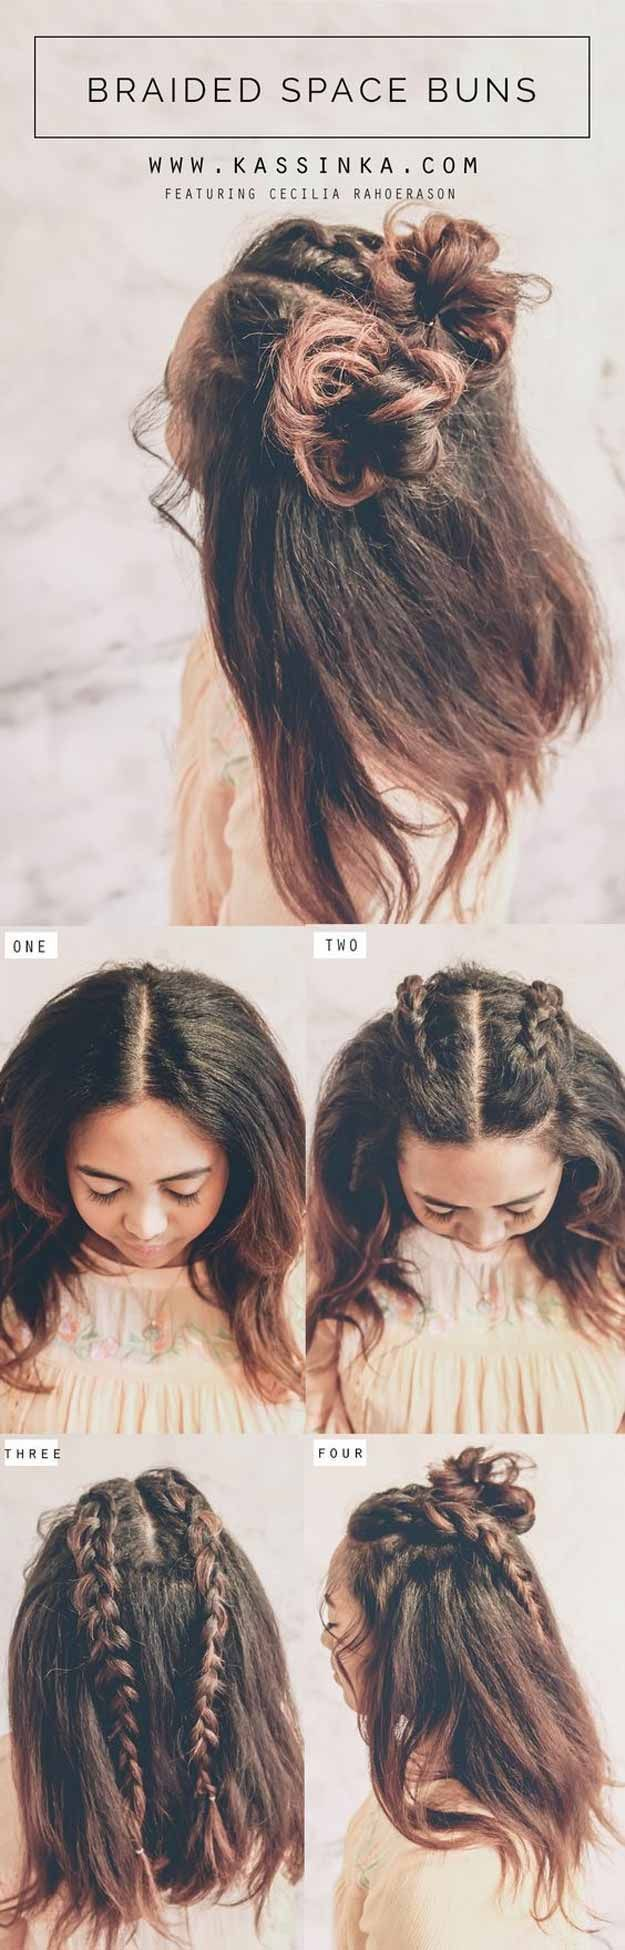 Best Pinterest Hair Tutorials Braided Space Buns Step By Step Tutorial From Pint Braids For Medium Length Hair Medium Hair Styles Medium Length Hair Styles